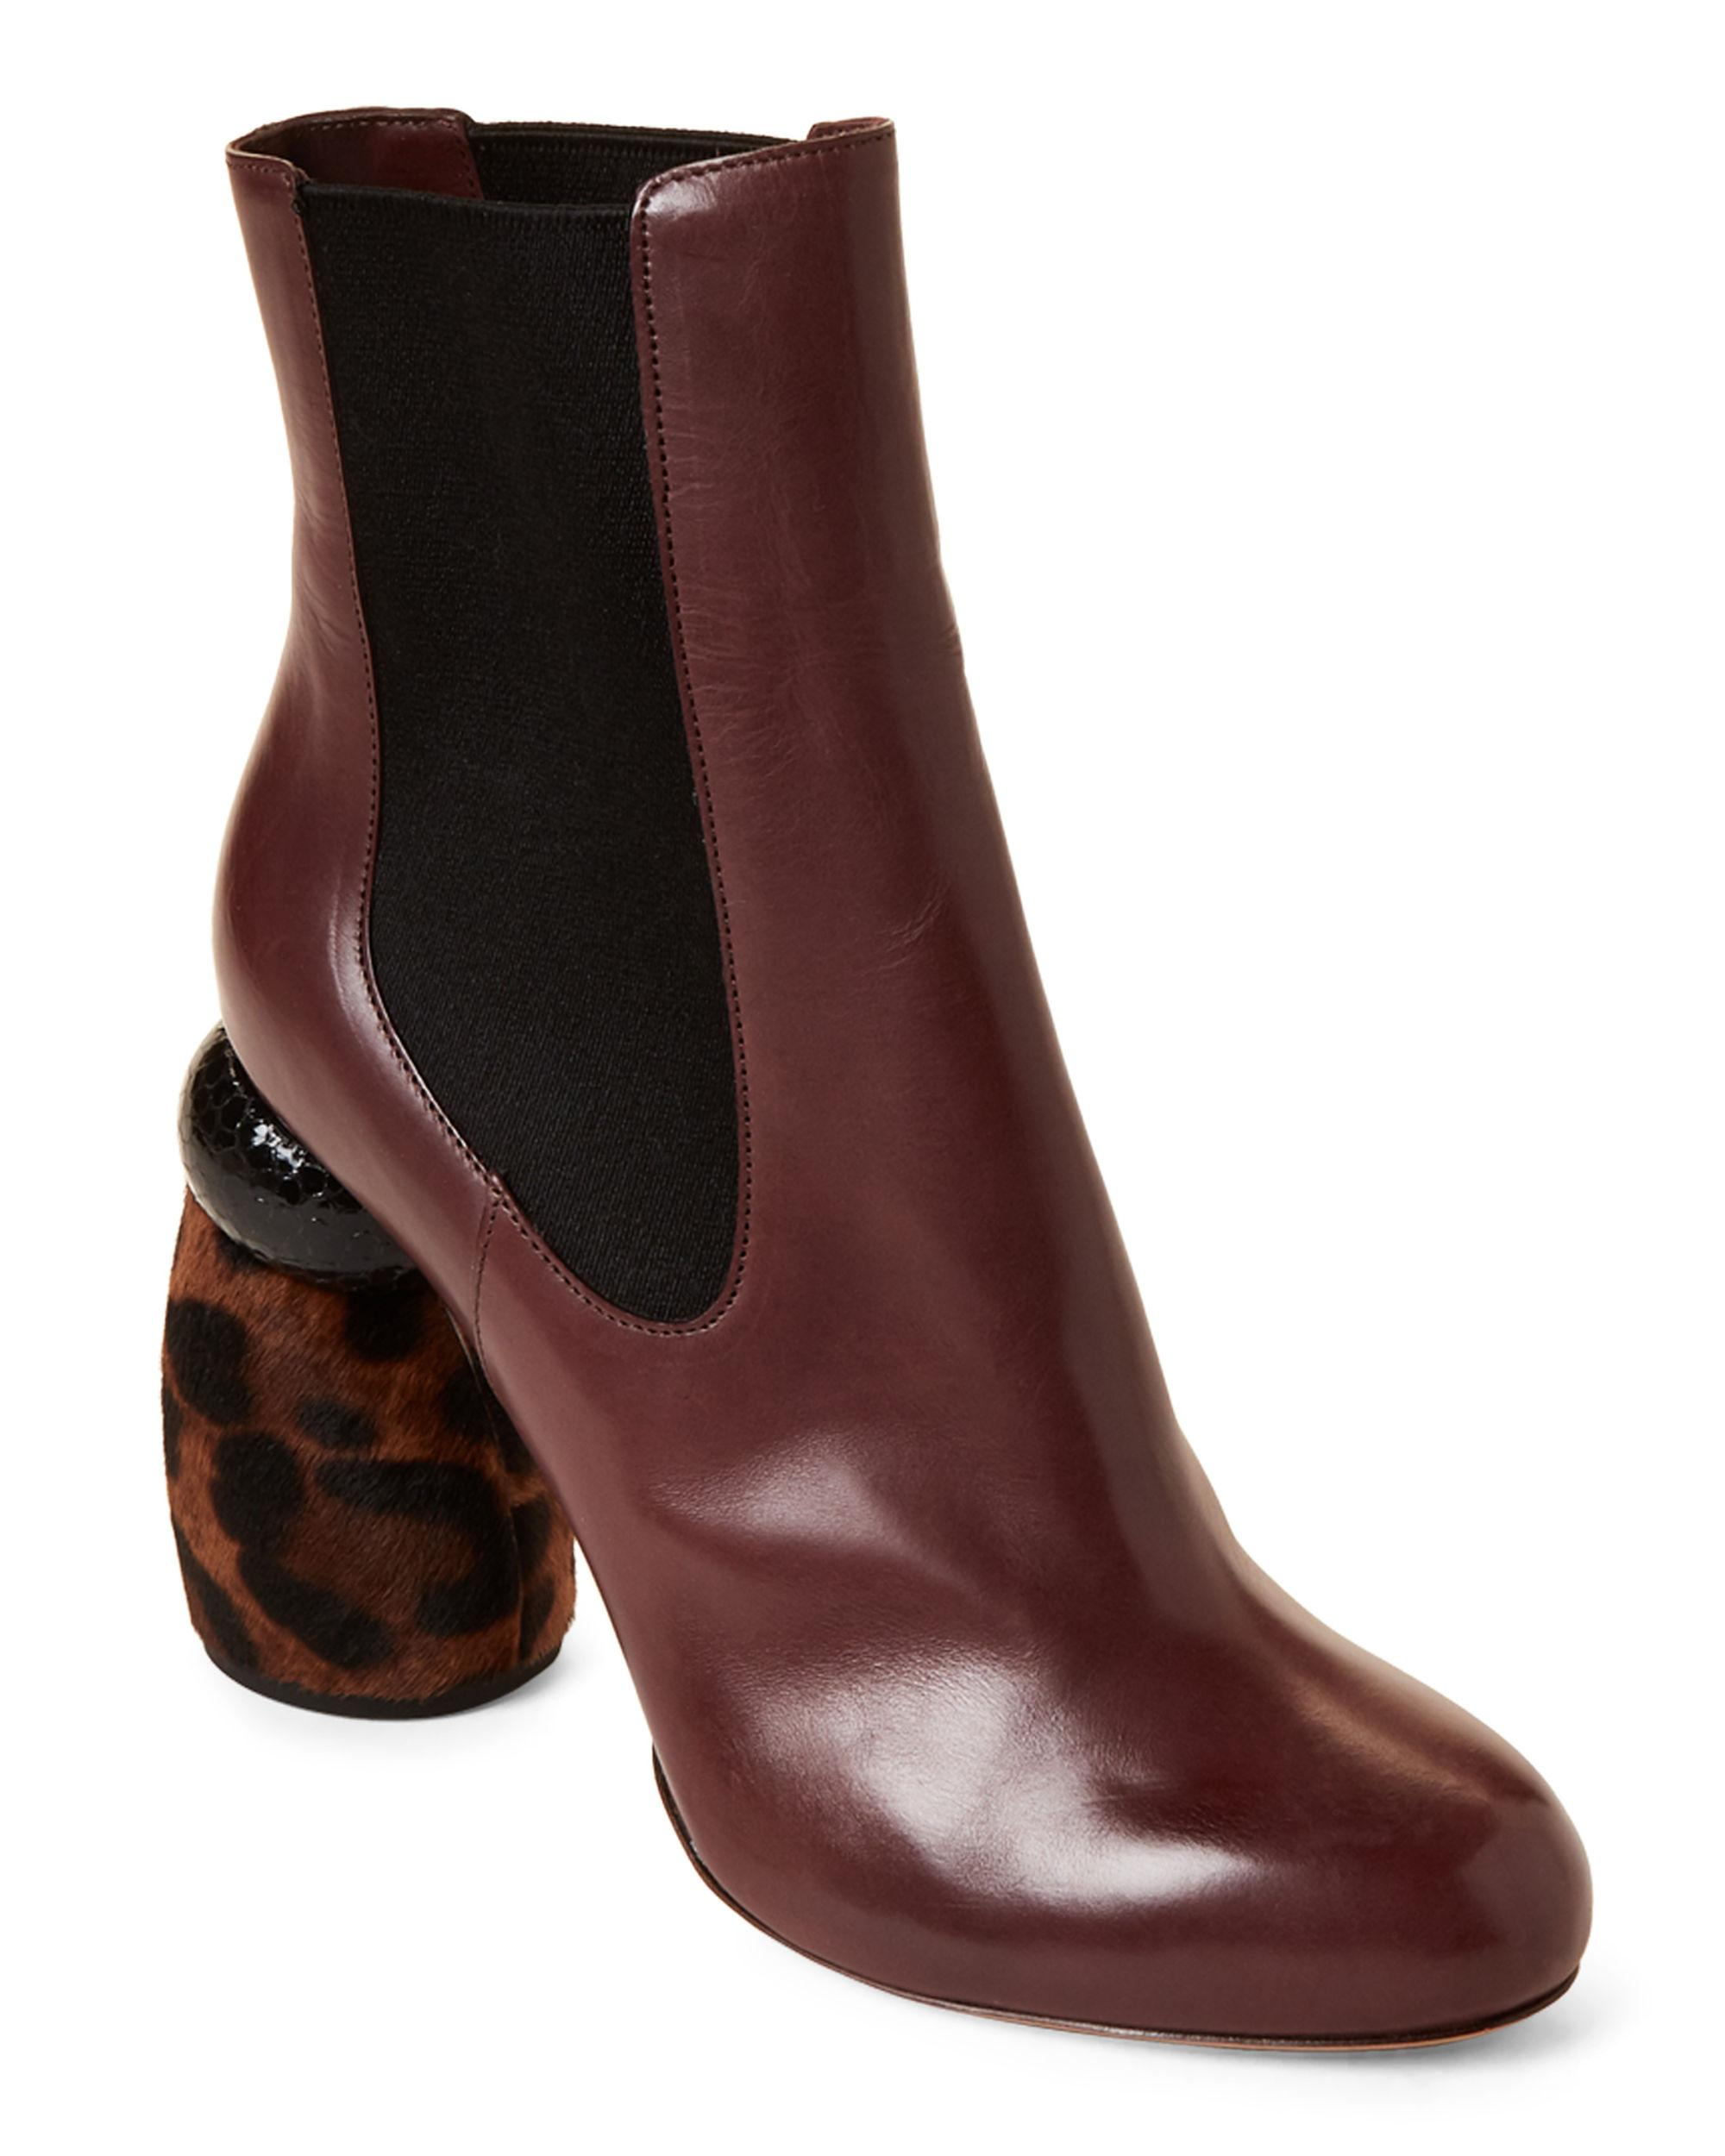 e781cd73ea Dries Van Noten. Women s Brown Bordeaux Calf Hair Heel Leather Ankle Boots.   720  250 From Century 21. Free shipping ...